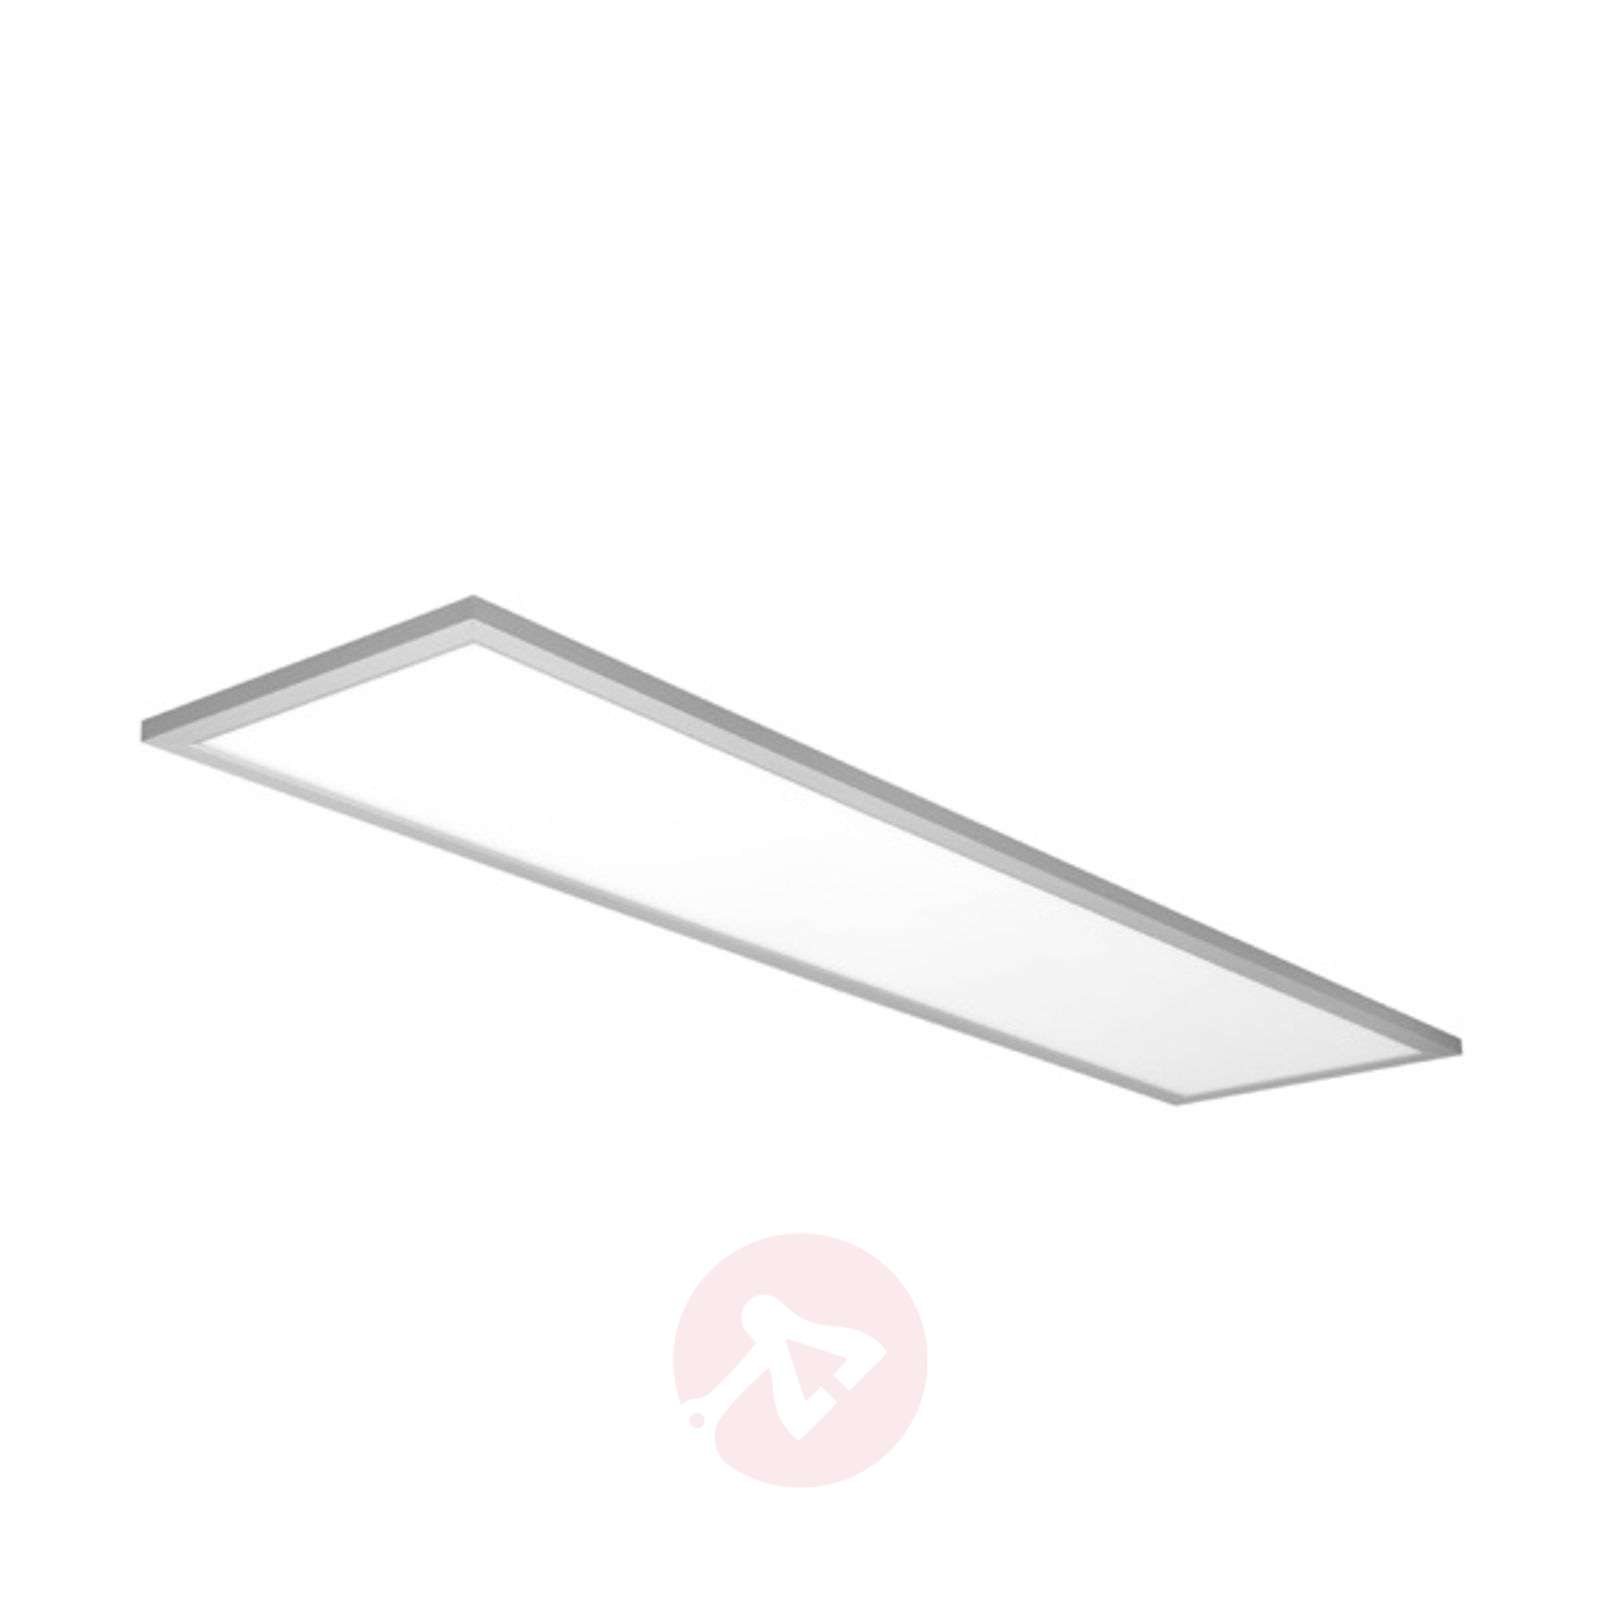 Panel LED cuadrado All in One-3002170X-01